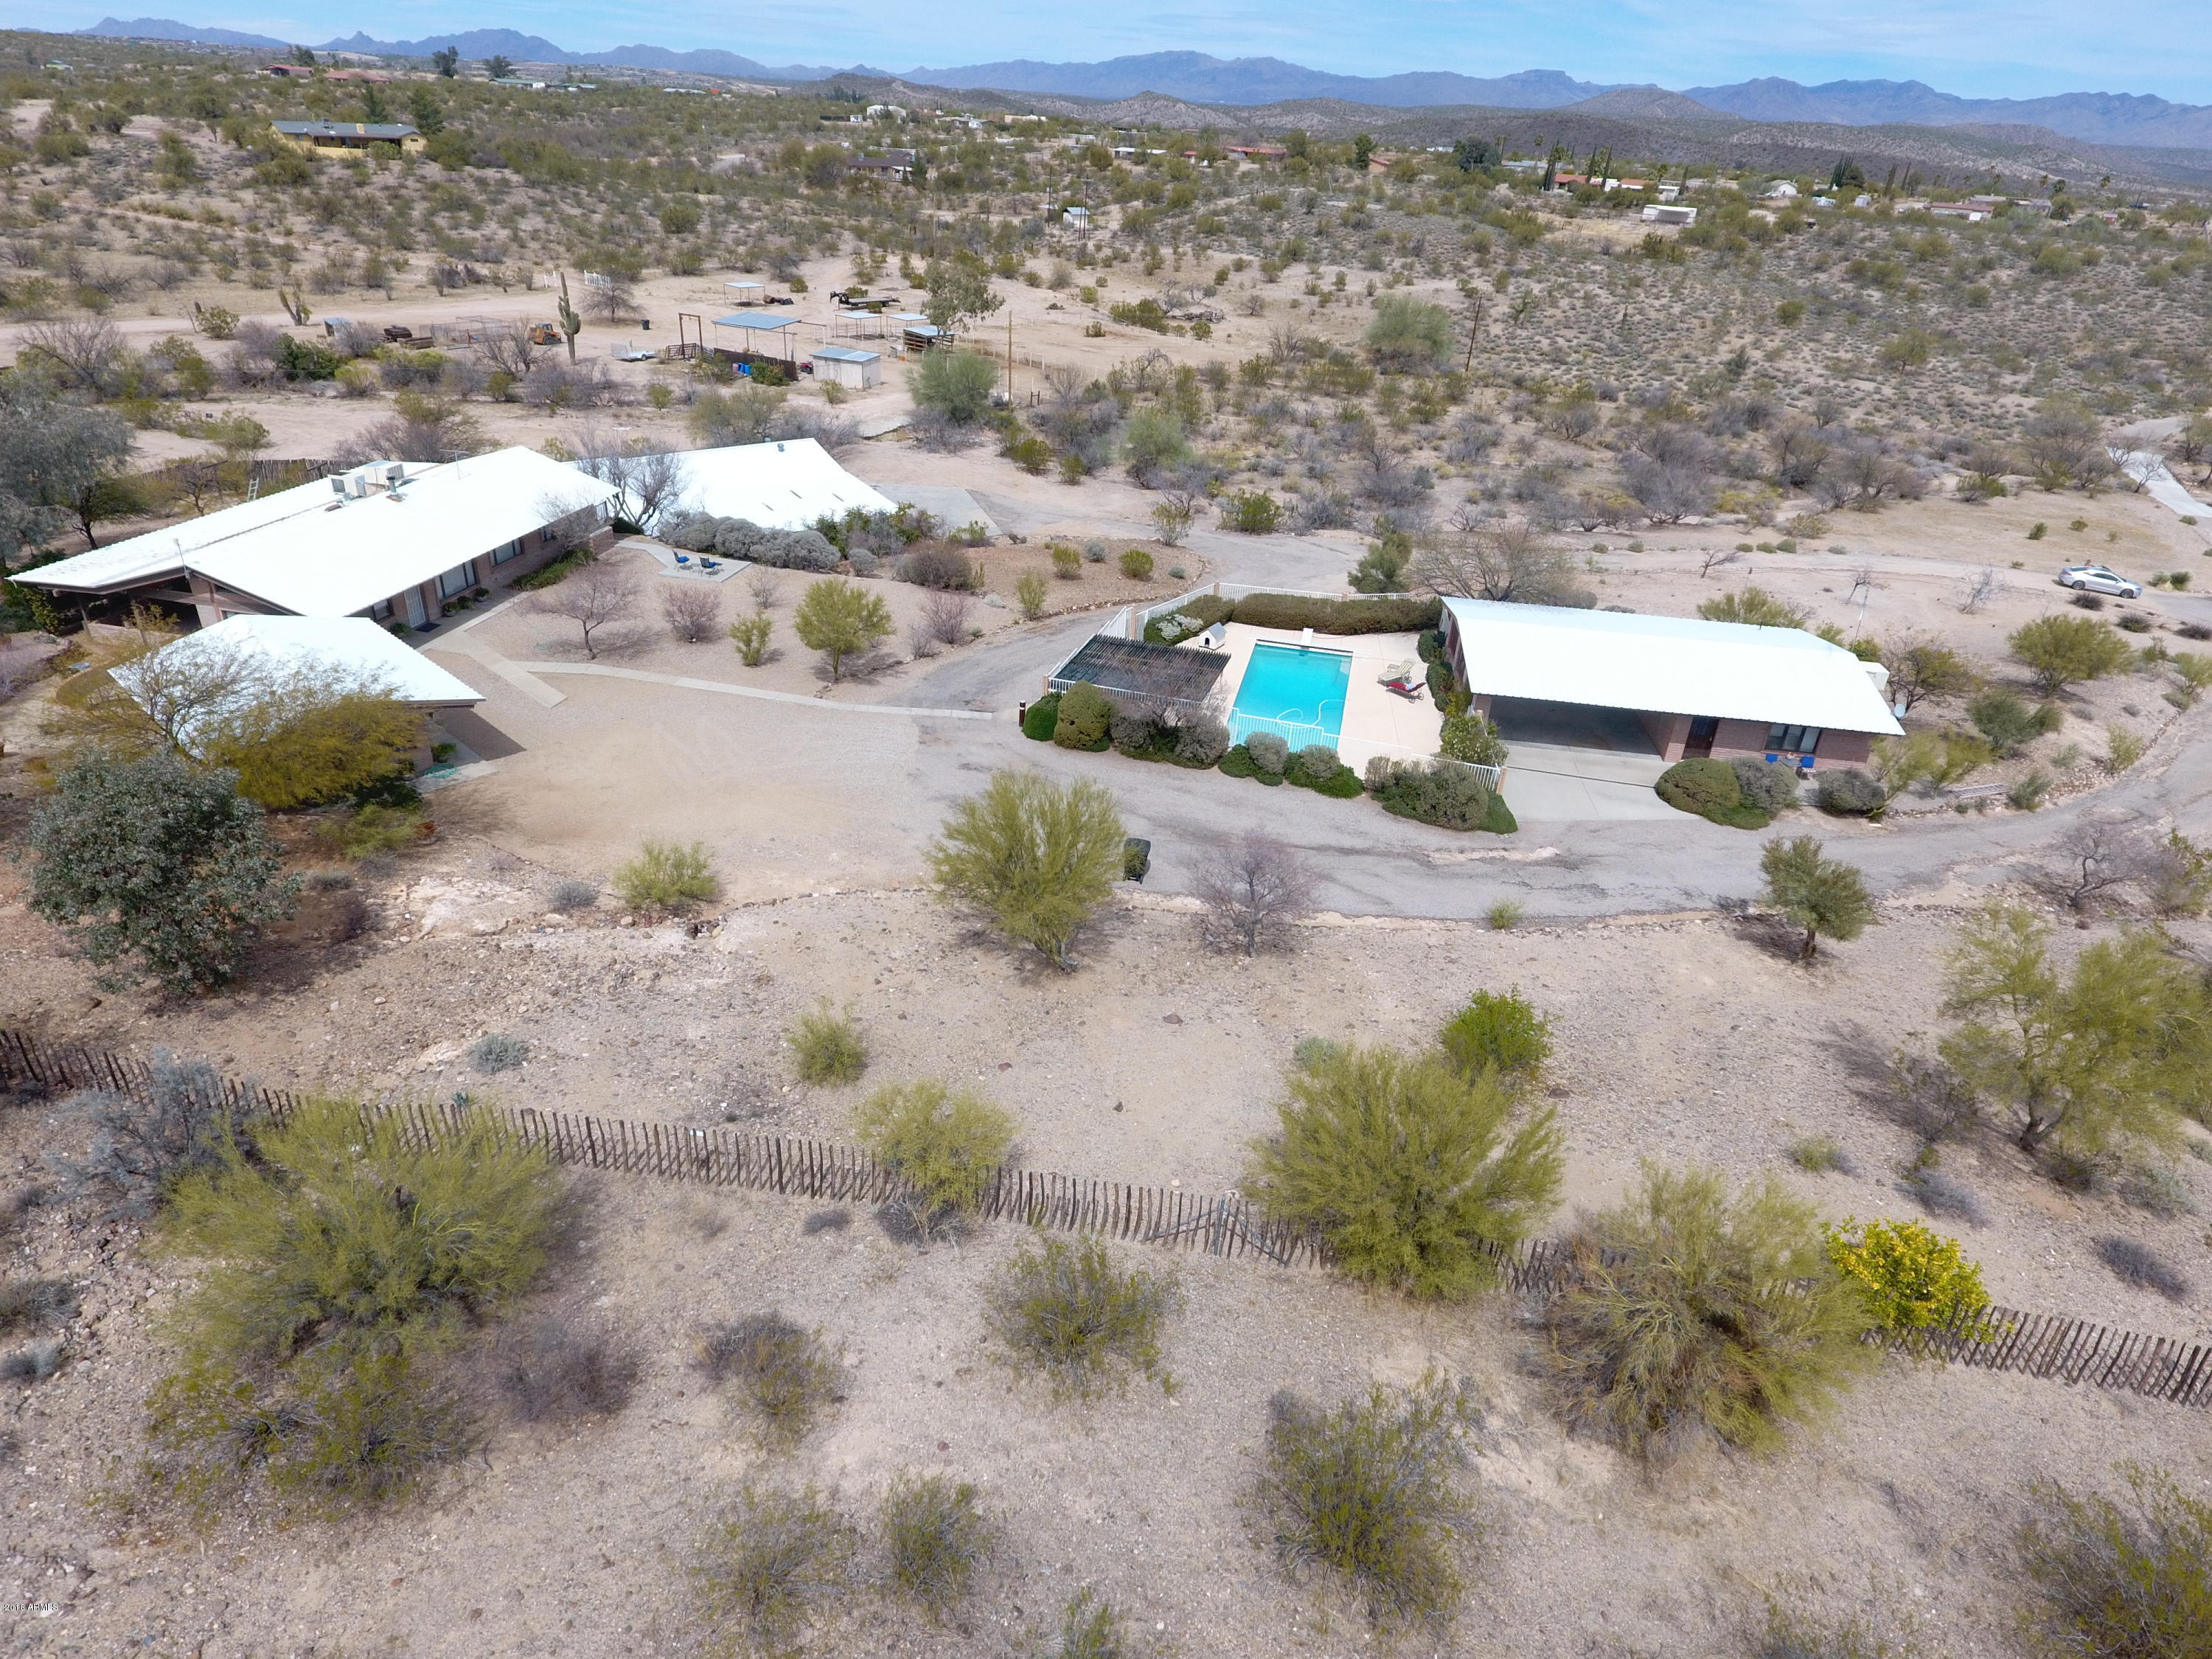 MLS 5739157 37780 W HEARTLAND Way, Wickenburg, AZ 85390 Wickenburg AZ Eco-Friendly